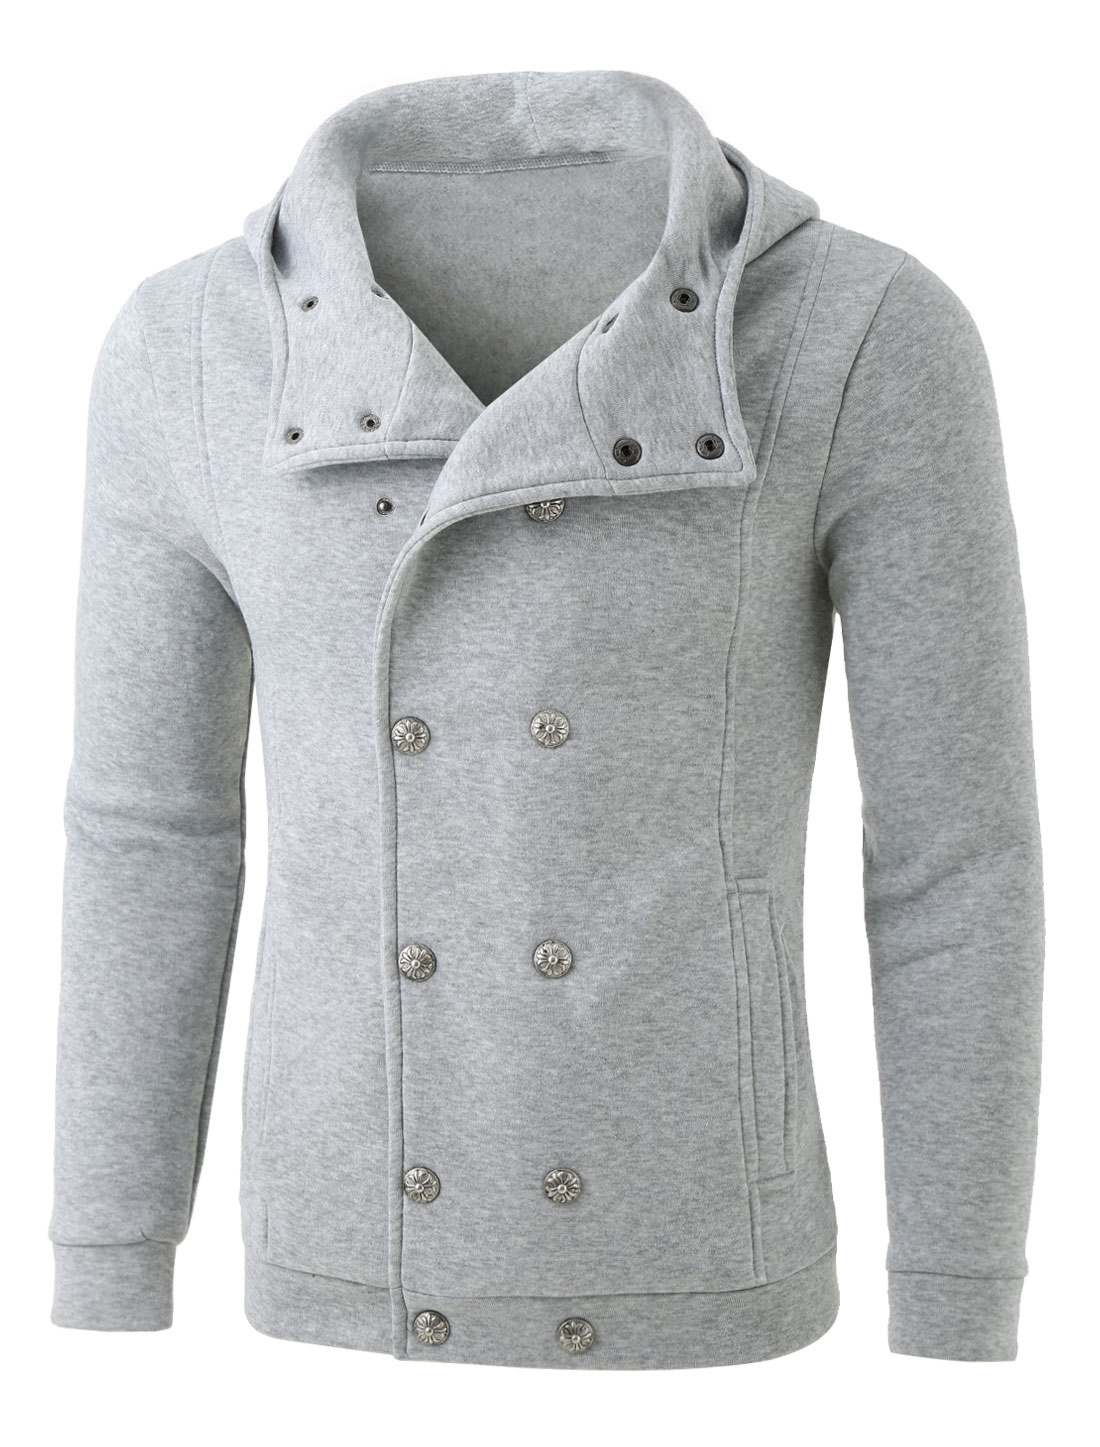 Men Casual Winter Autumn Button Up Solid Fleece Jacket Hoodie Light Gray M